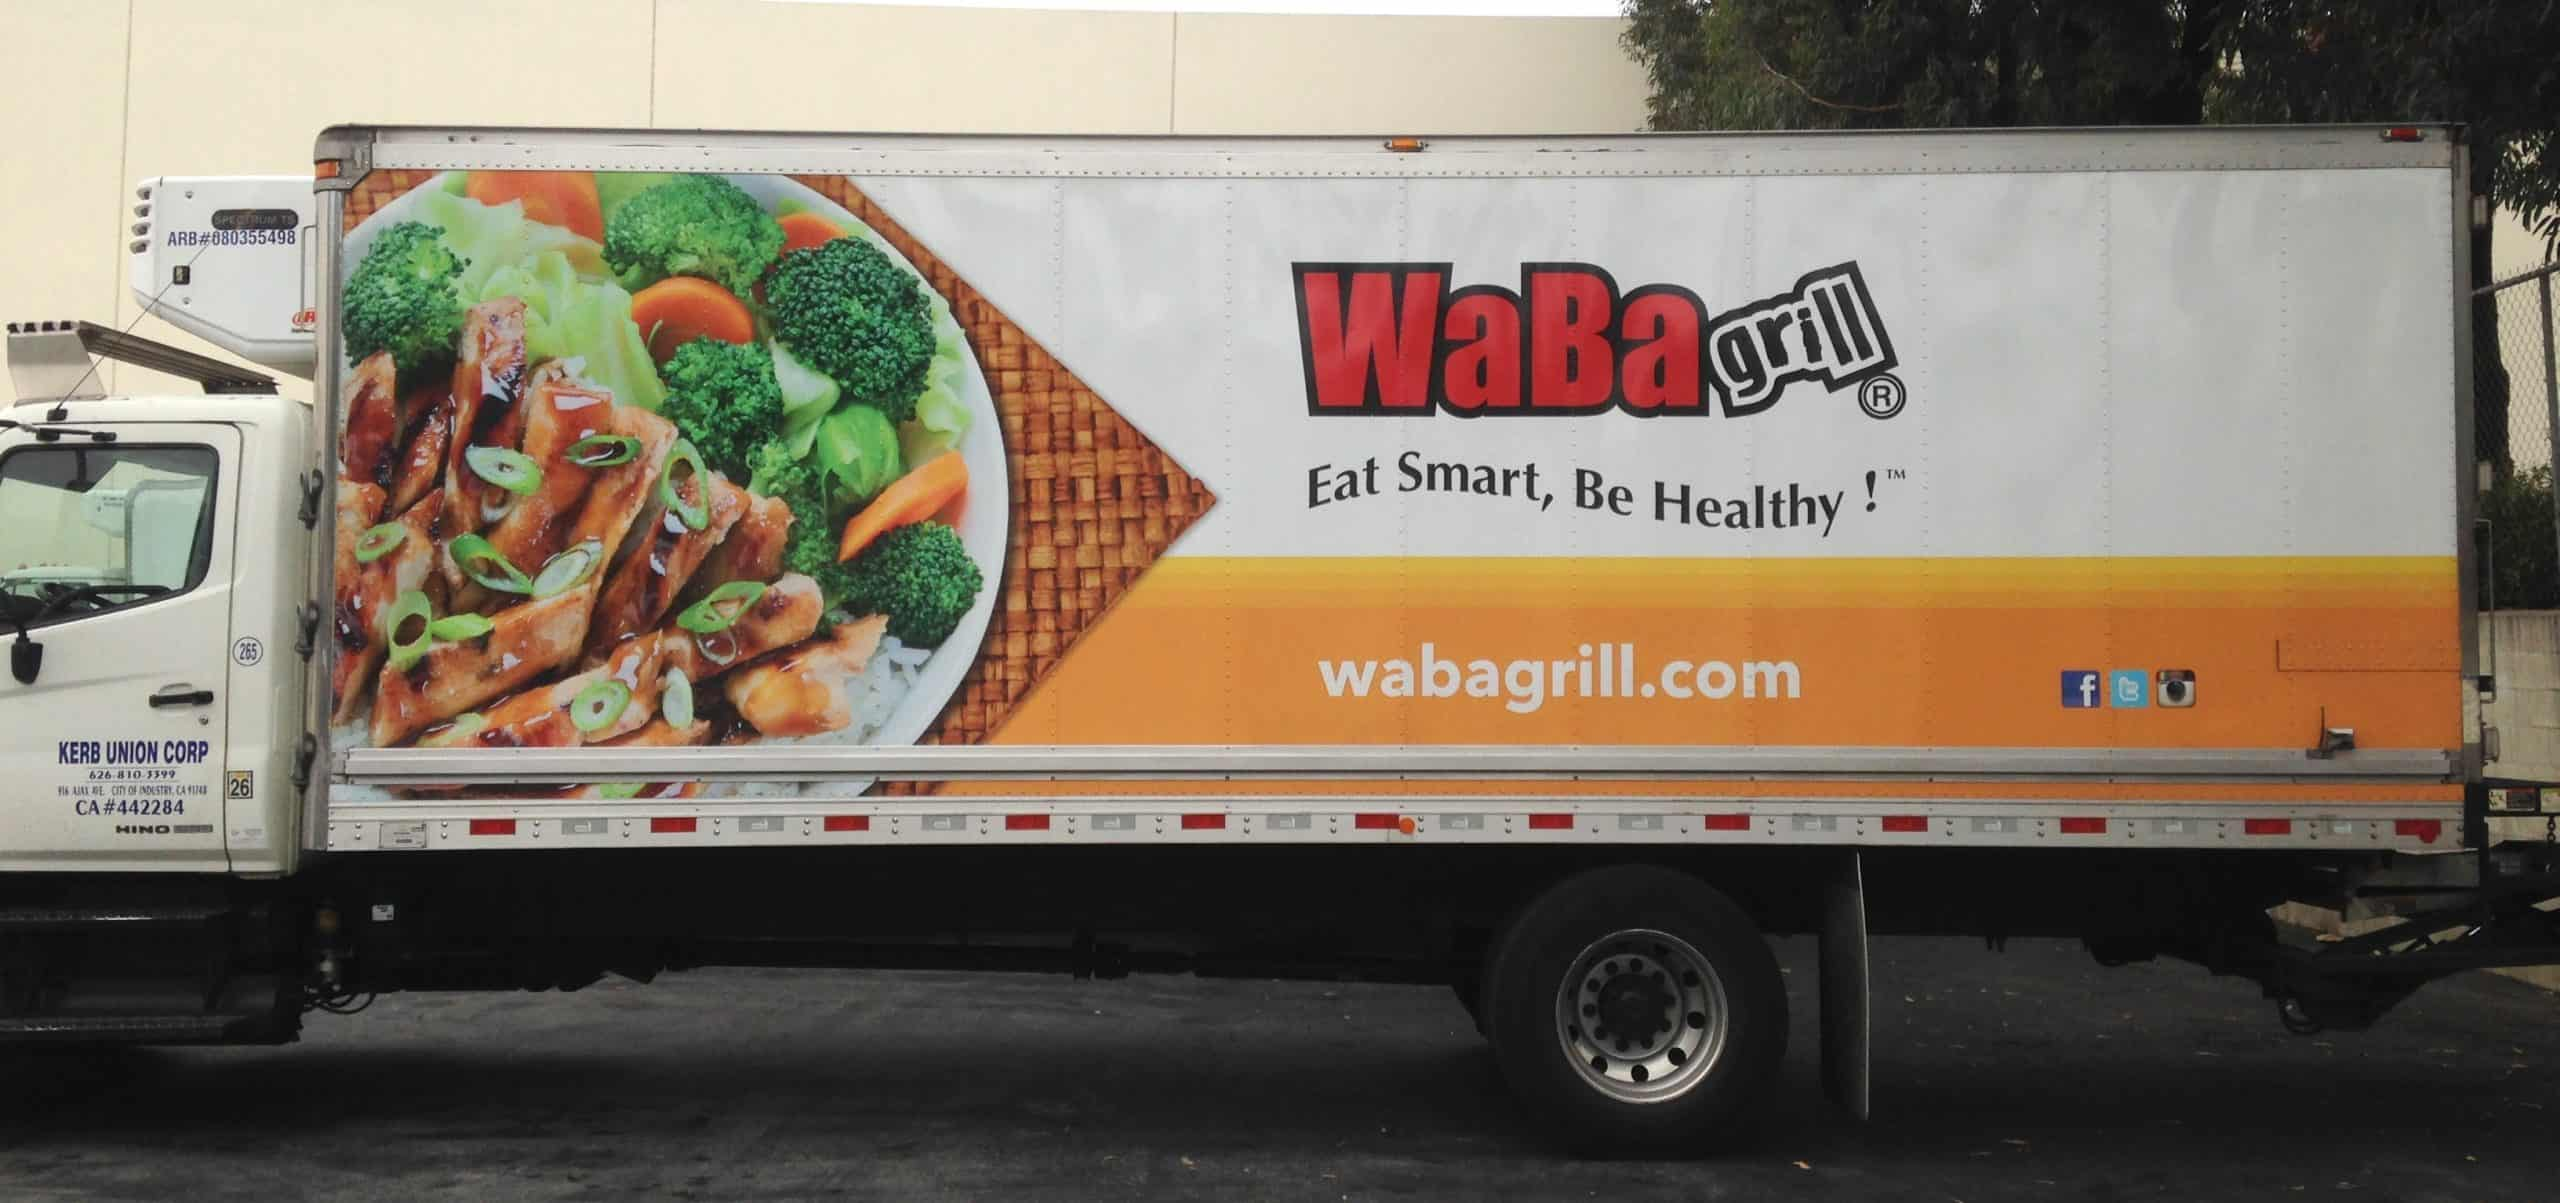 Fleet provides graphic wraps and custom graphics for fleets, trucks, cars, autos and trailer graphics.